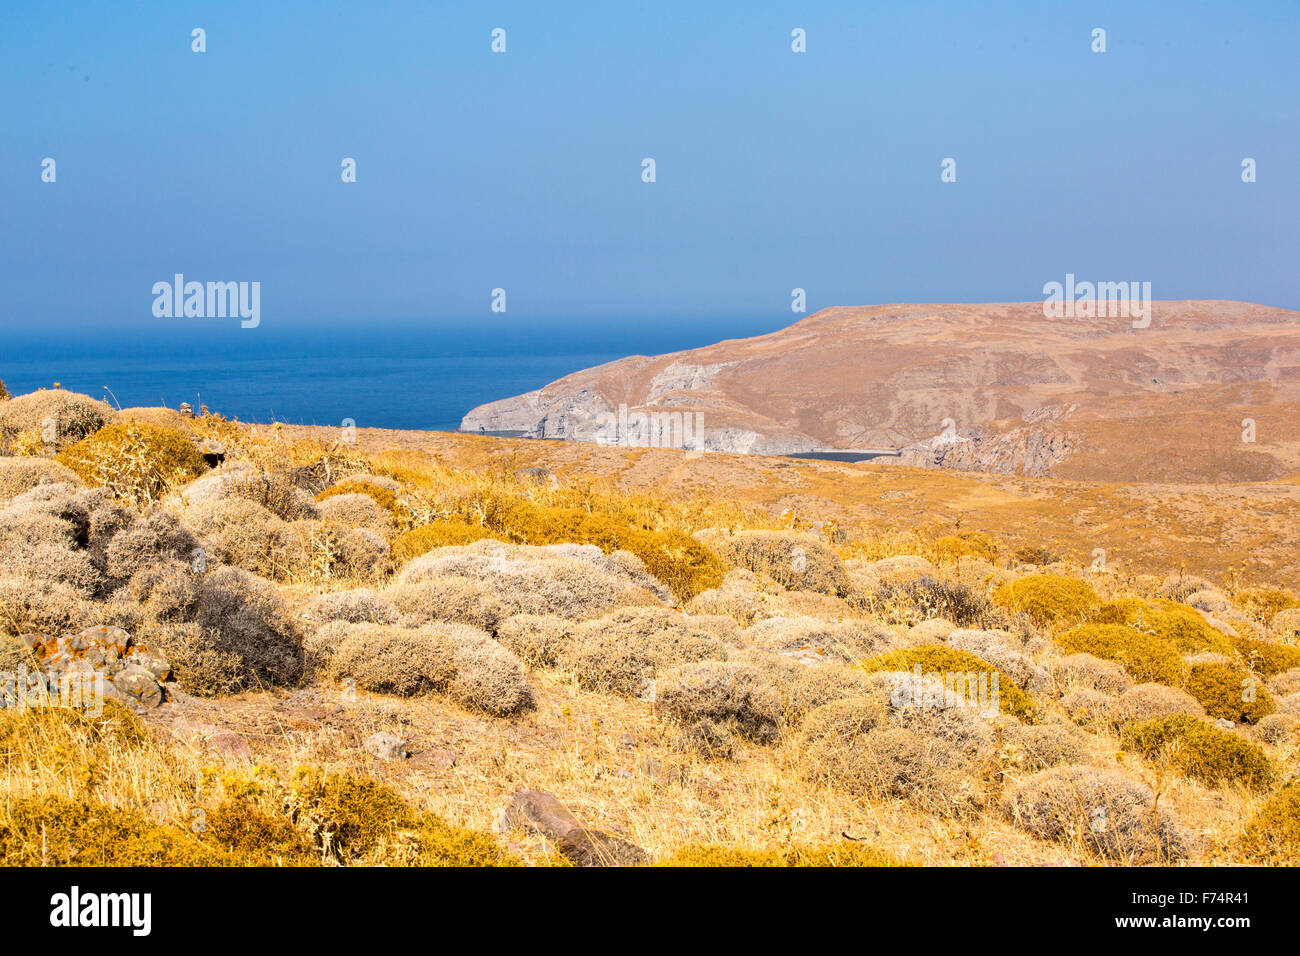 Barren rocky hillsides with sparce thorny vegetation on Western Lesvos above Skala Eresou, Lesvos, Greece. Stock Photo